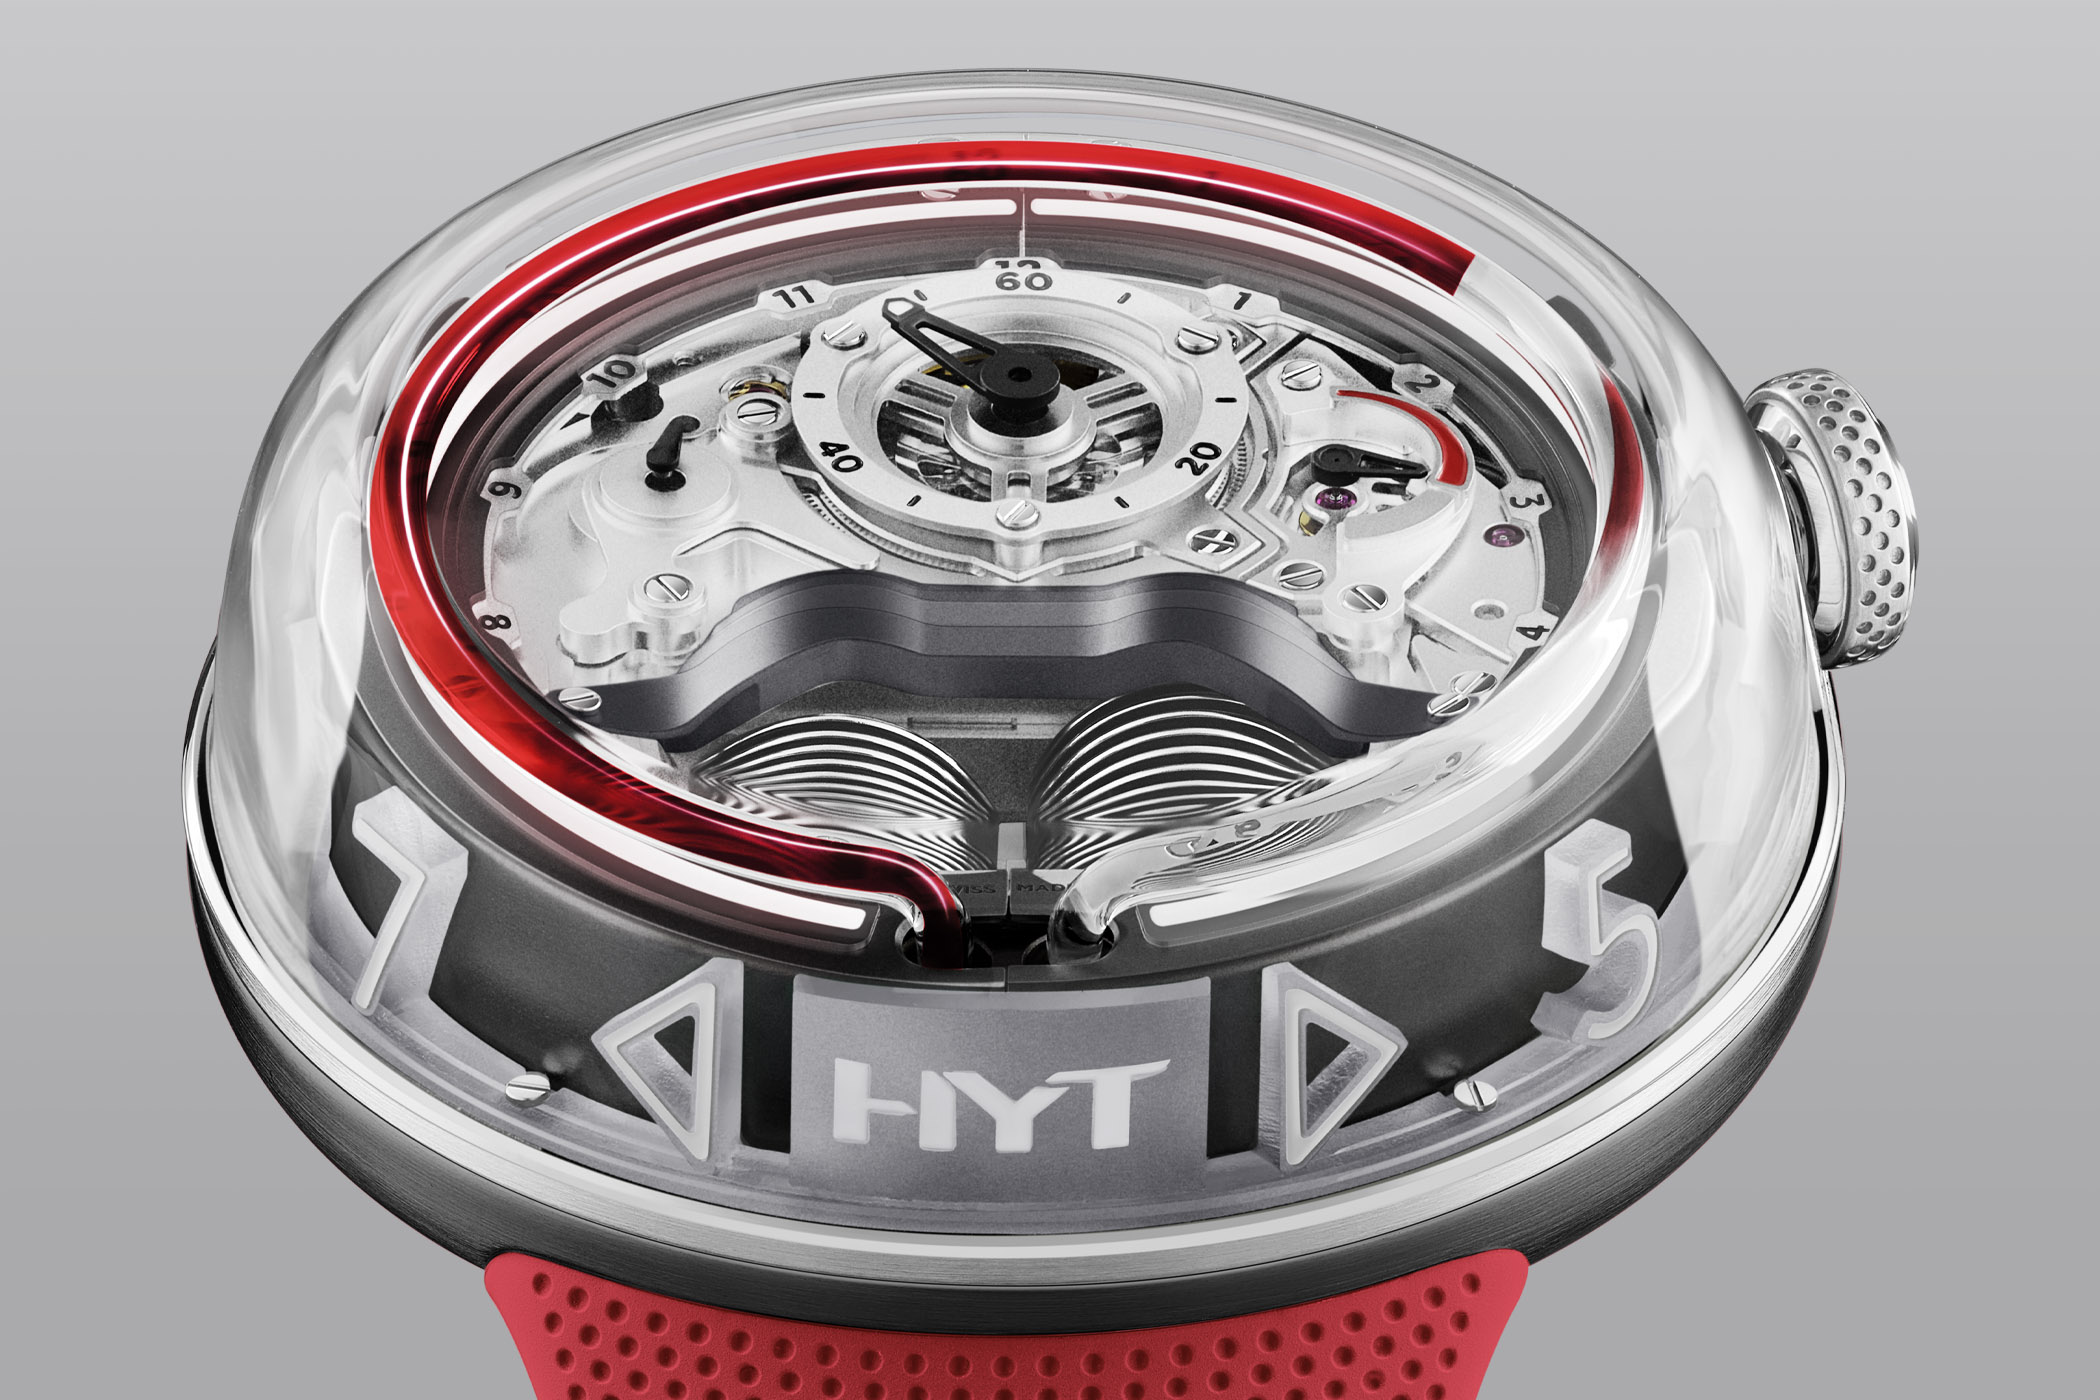 HYT H5 Red Limited edition